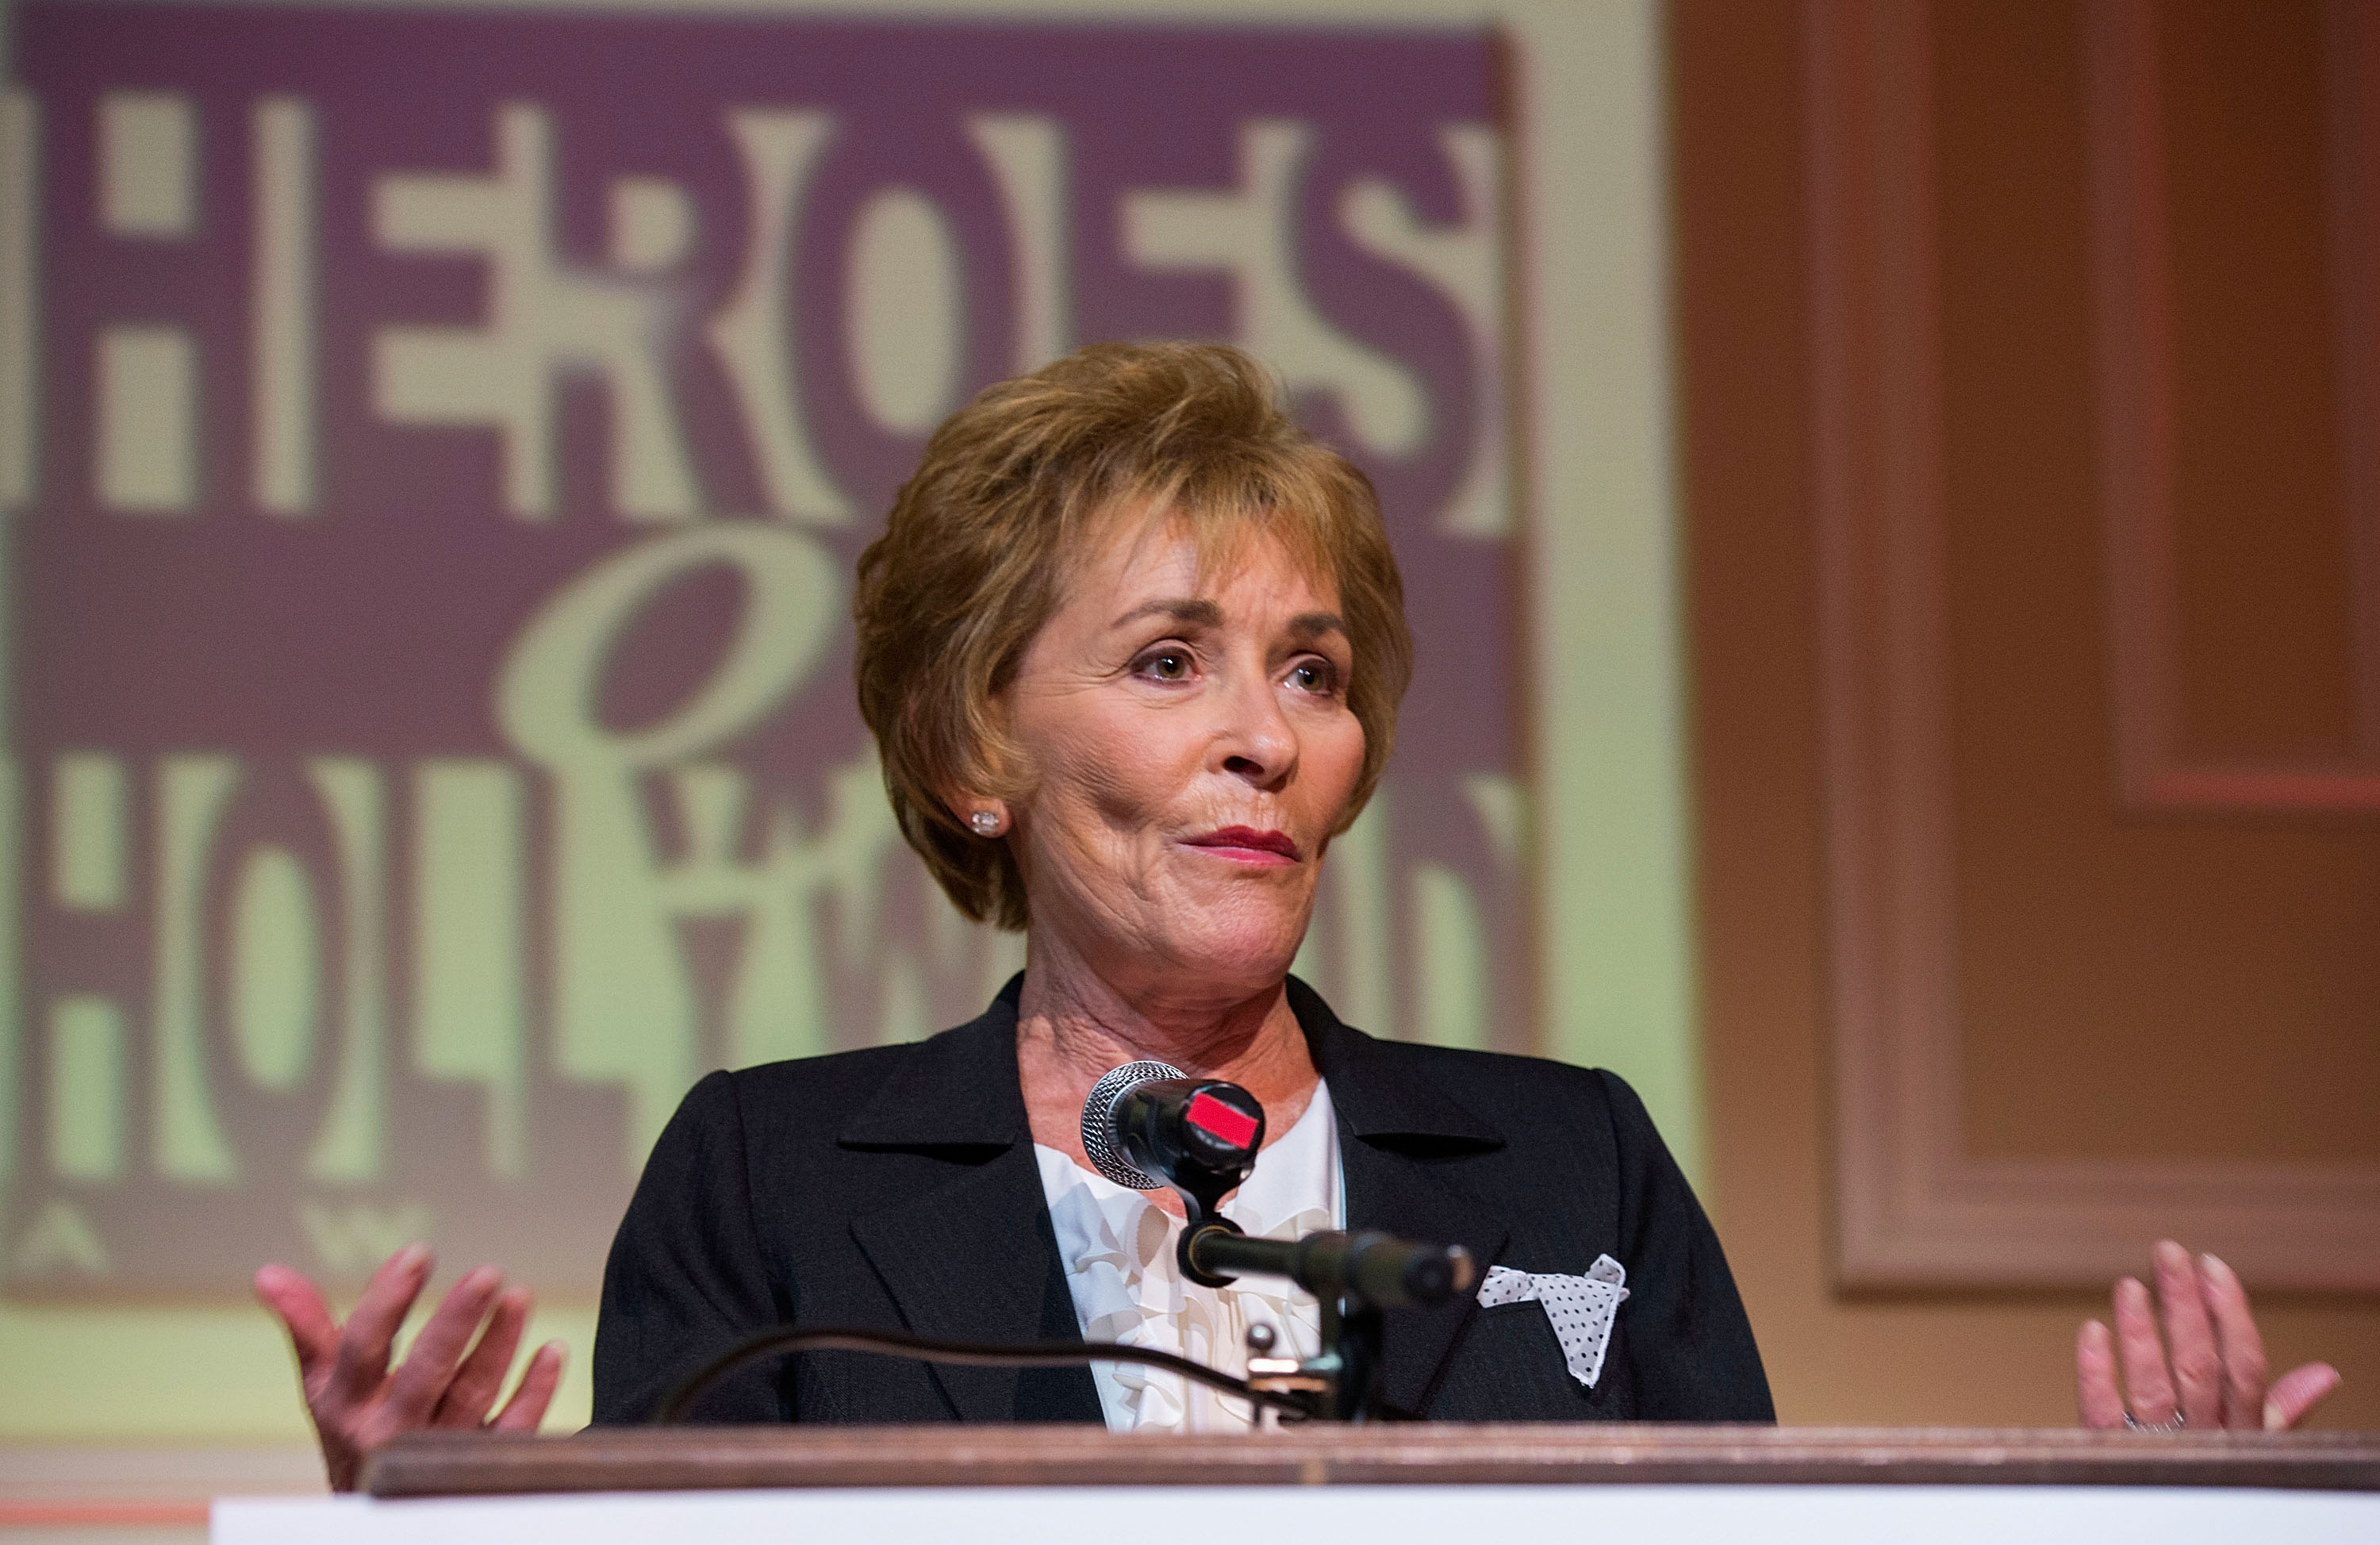 Judge Judy Image Source: Getty Images.